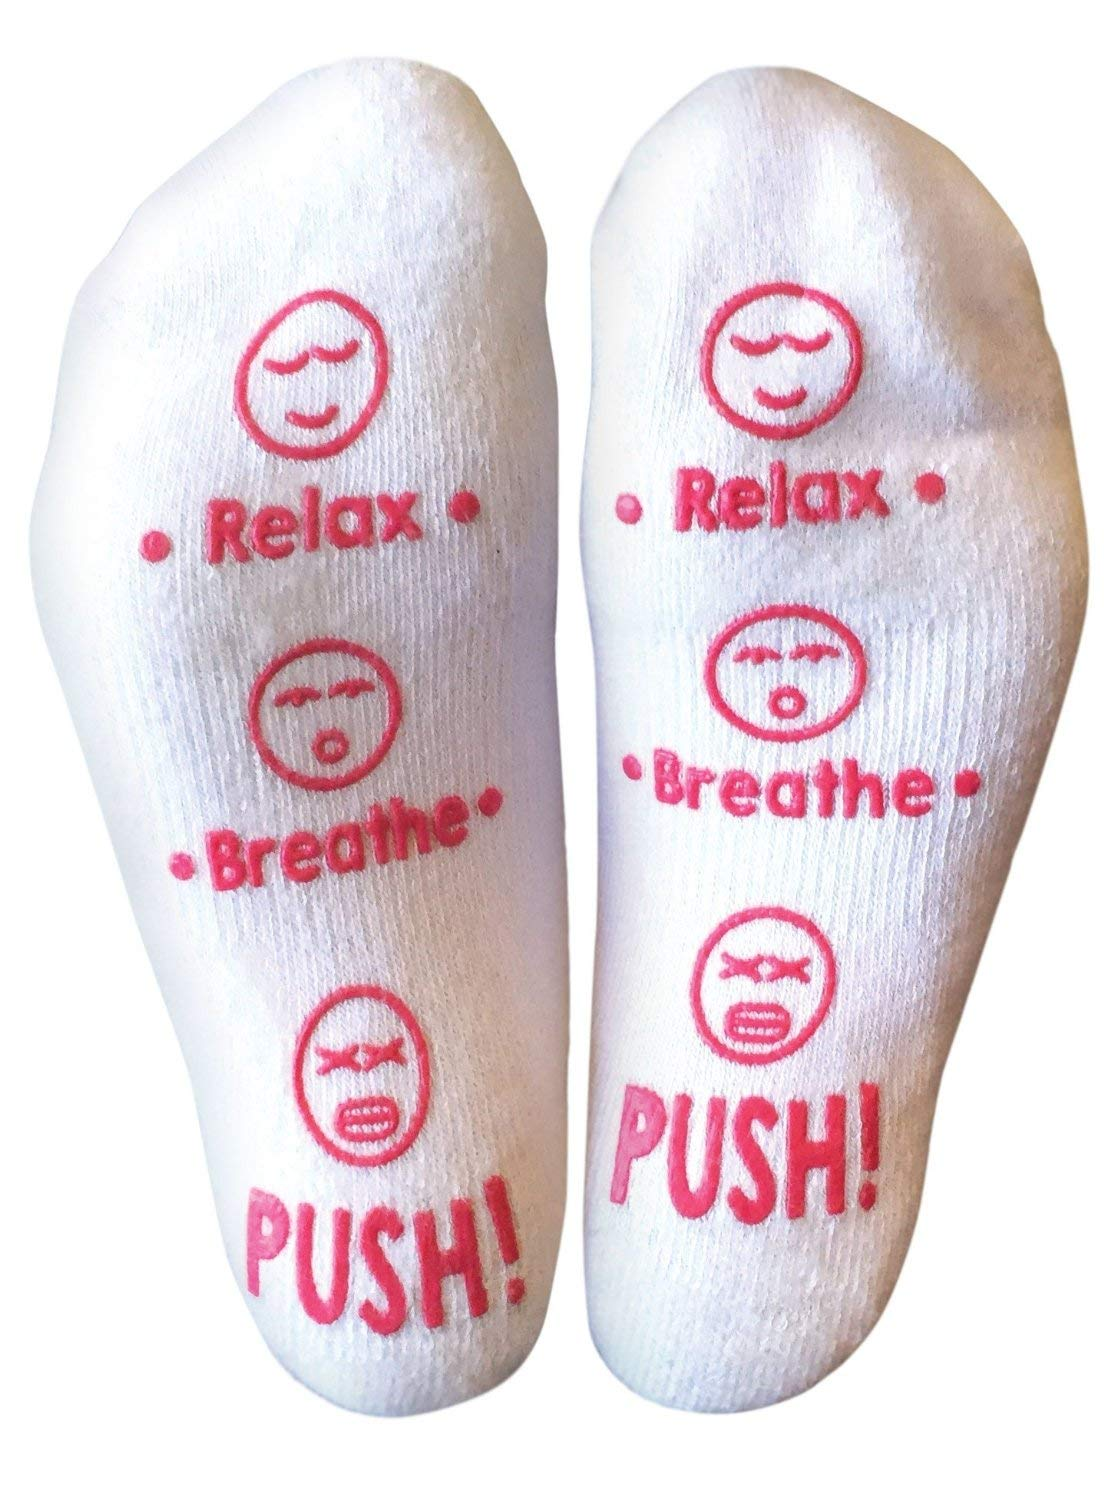 Labor and Delivery Socks - Baby Shower Gift or Ready Set Push Gift for Mom to Be